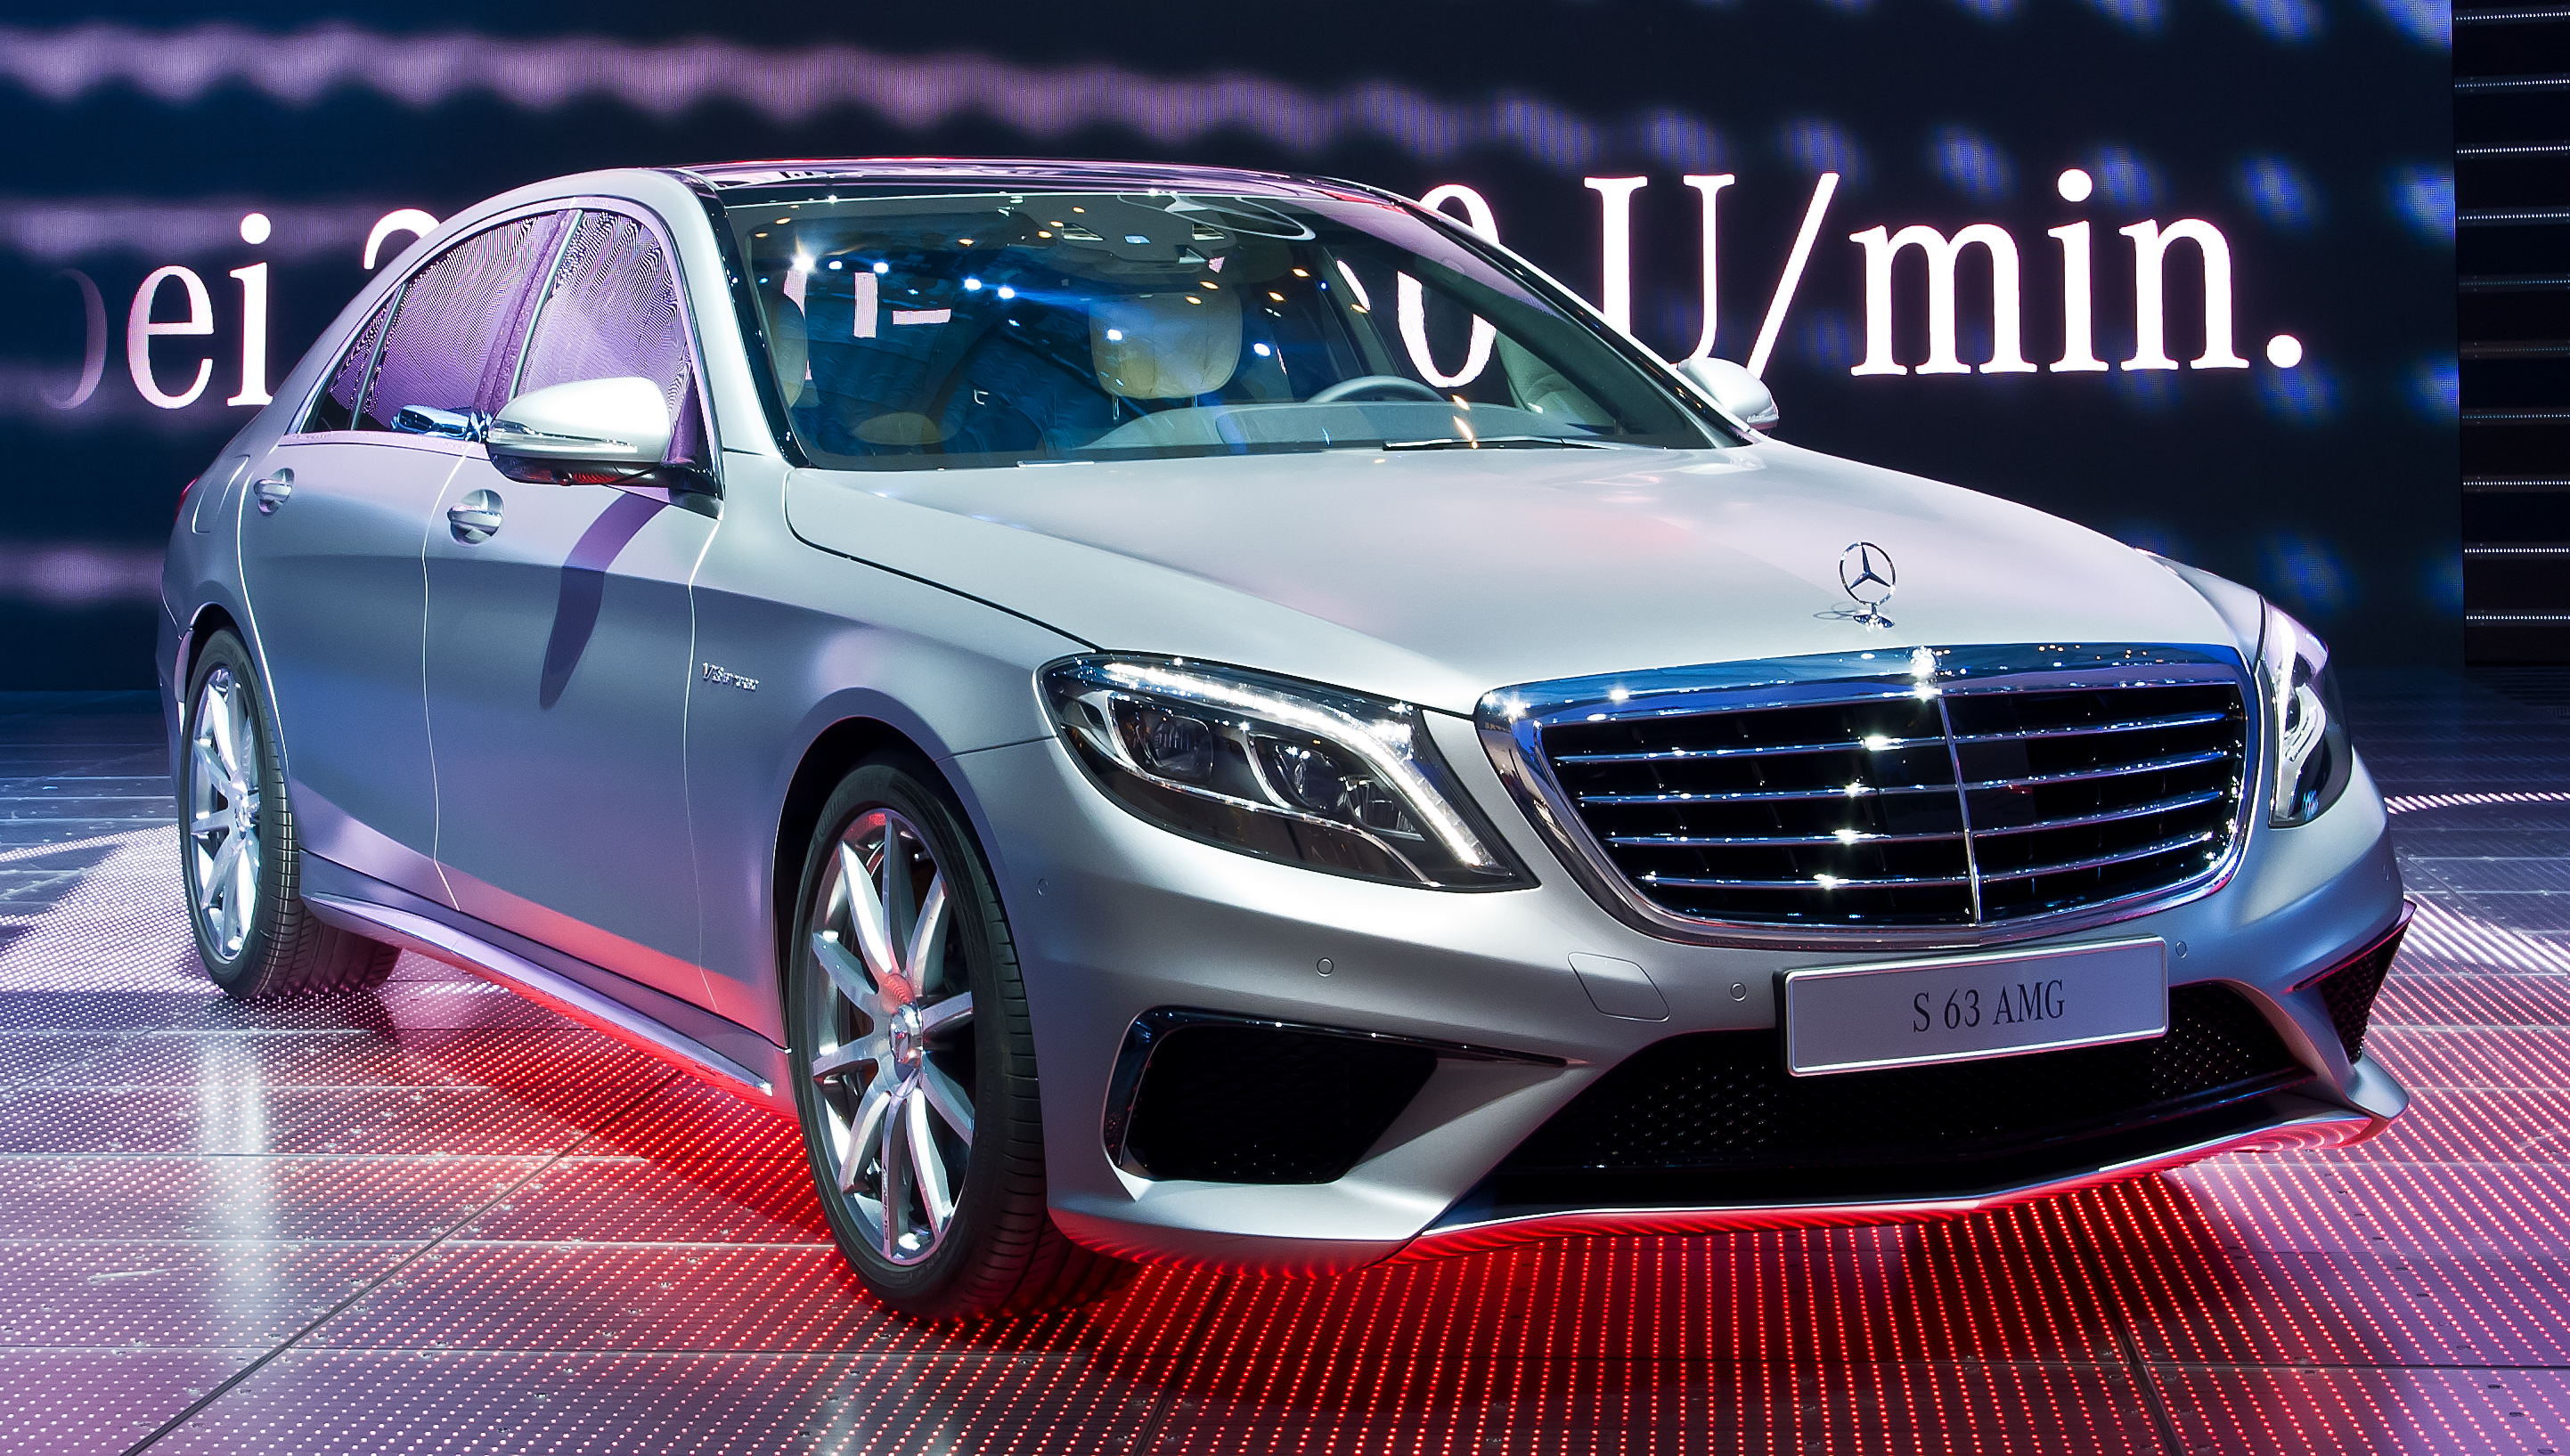 datei:mercedes-benz s 63 amg (w 222) – frontansicht, 14. september